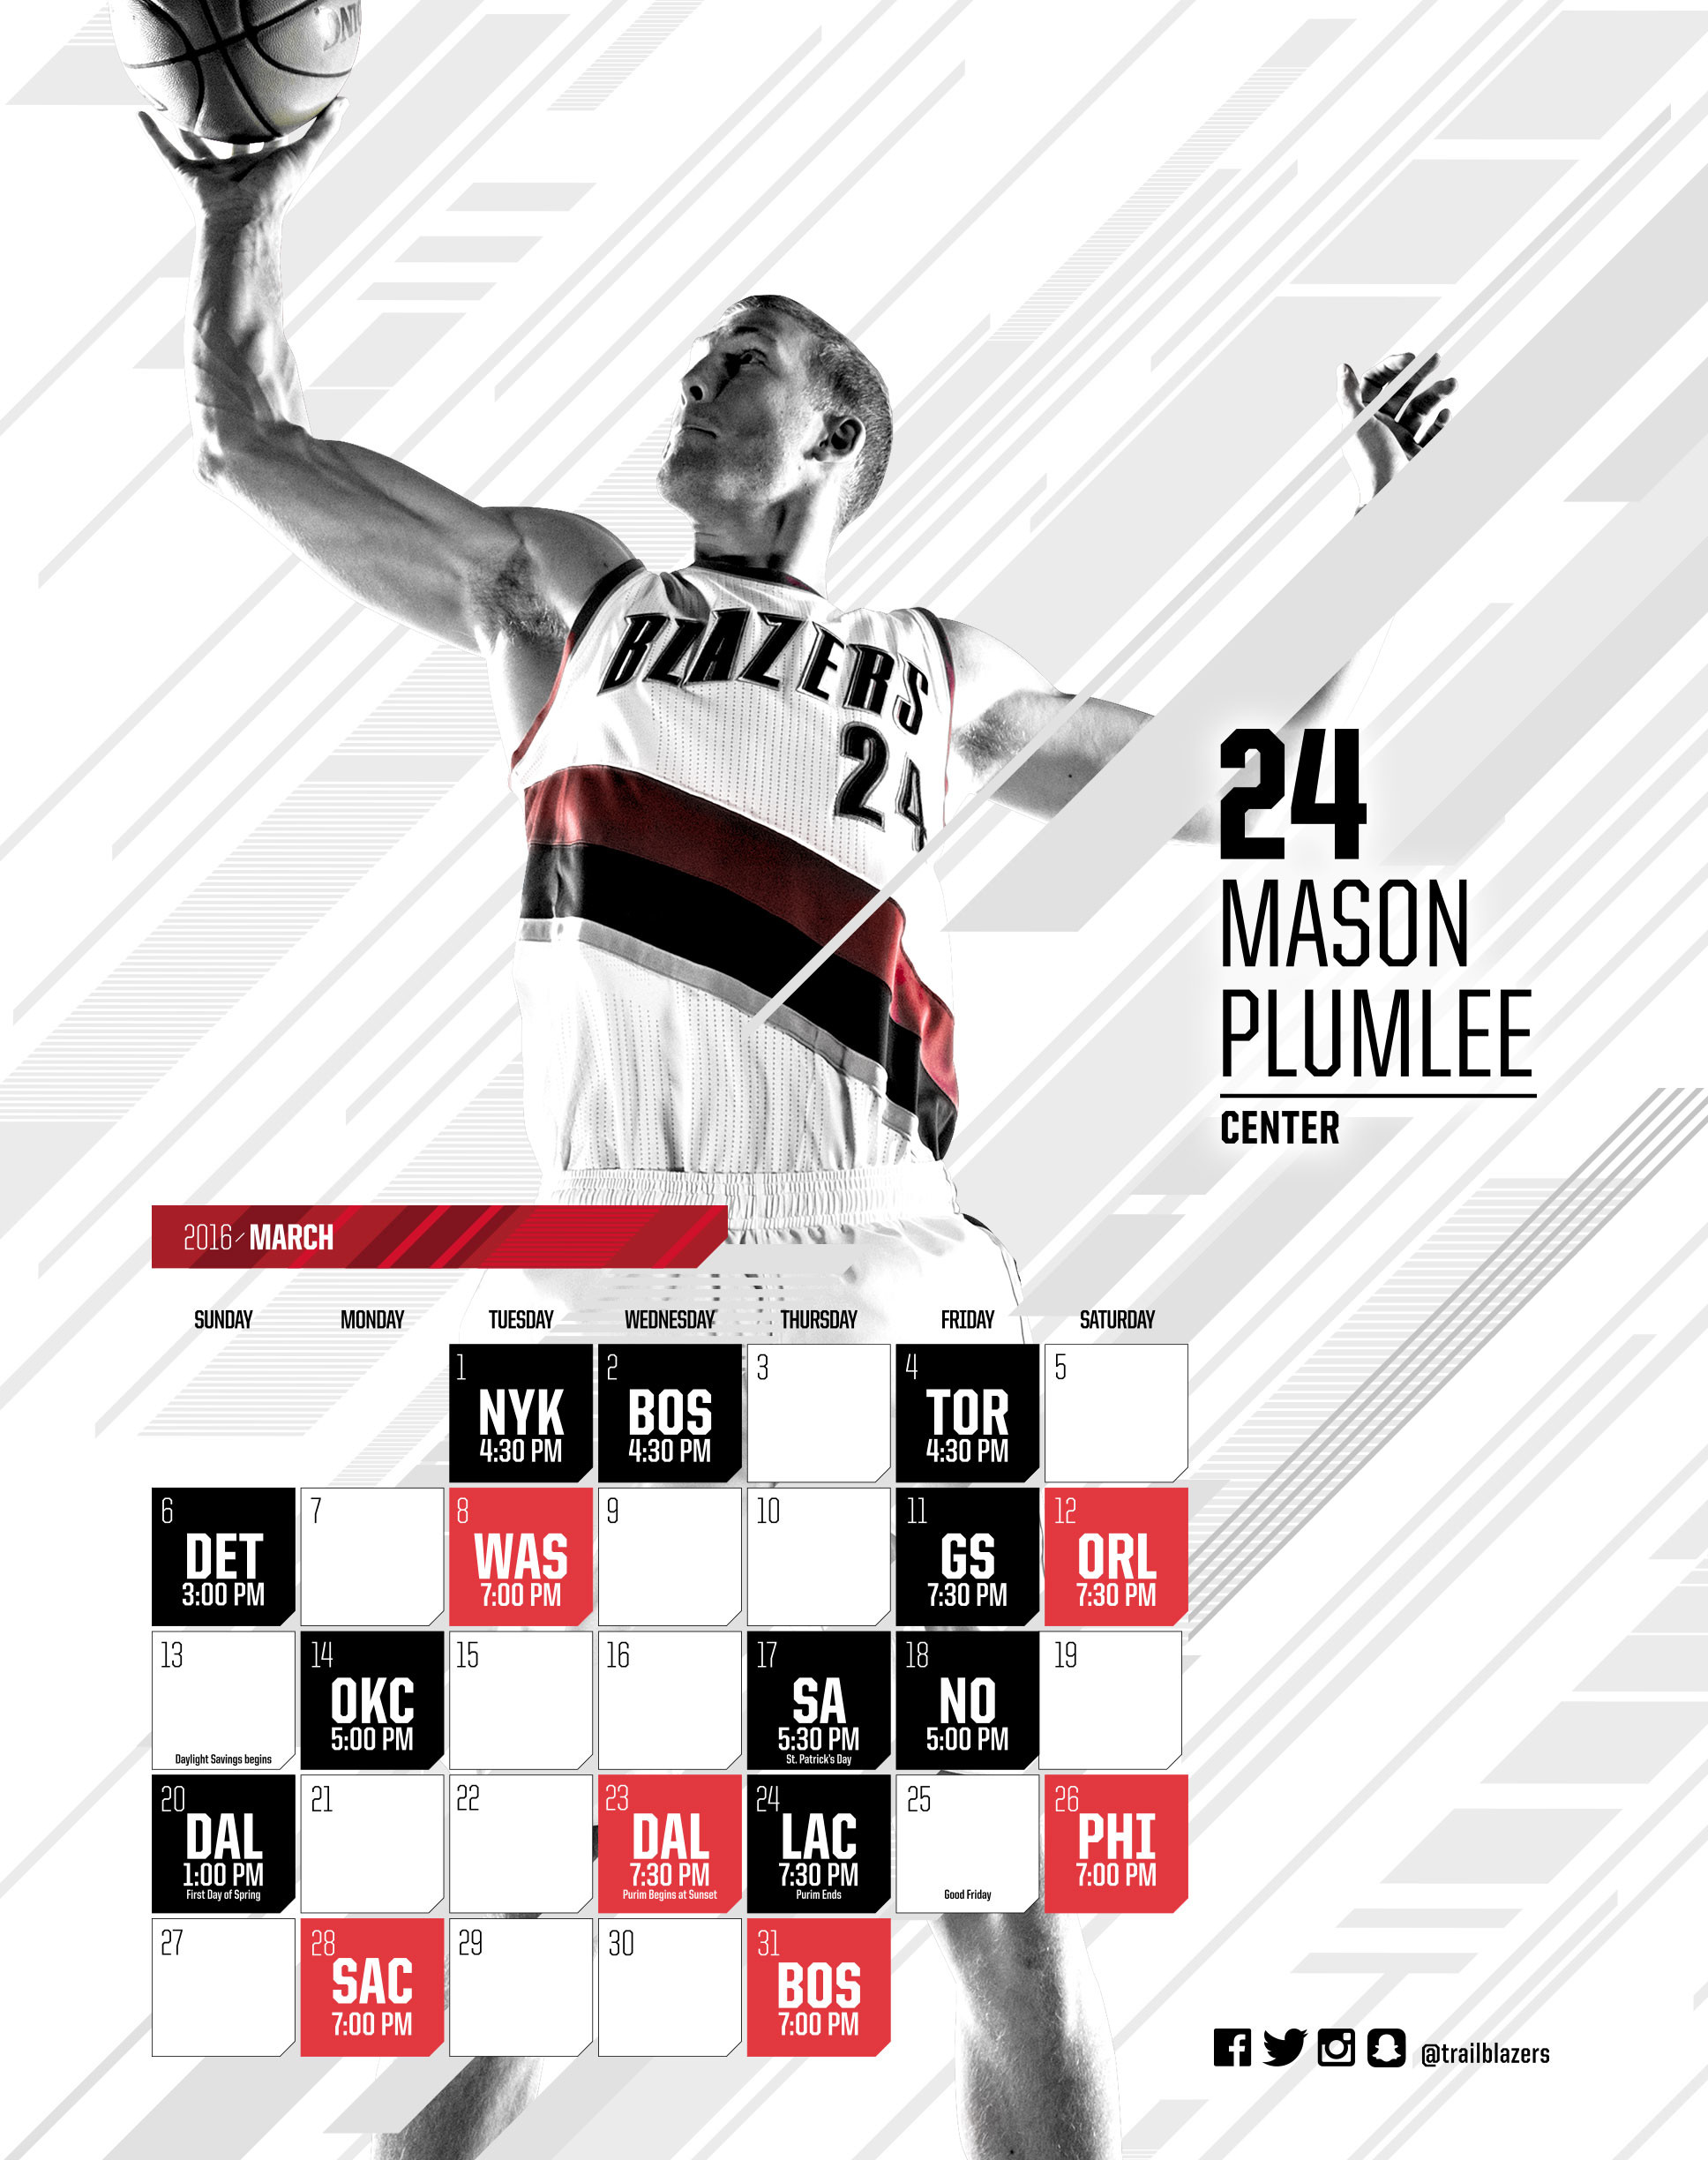 Wallpapers Portland Trail Blazers · Nba Blazers Schedule Photo Album –  Watch Out, There's a Clothes About. Nba Blazers Schedule Photo Album Watch  Out …